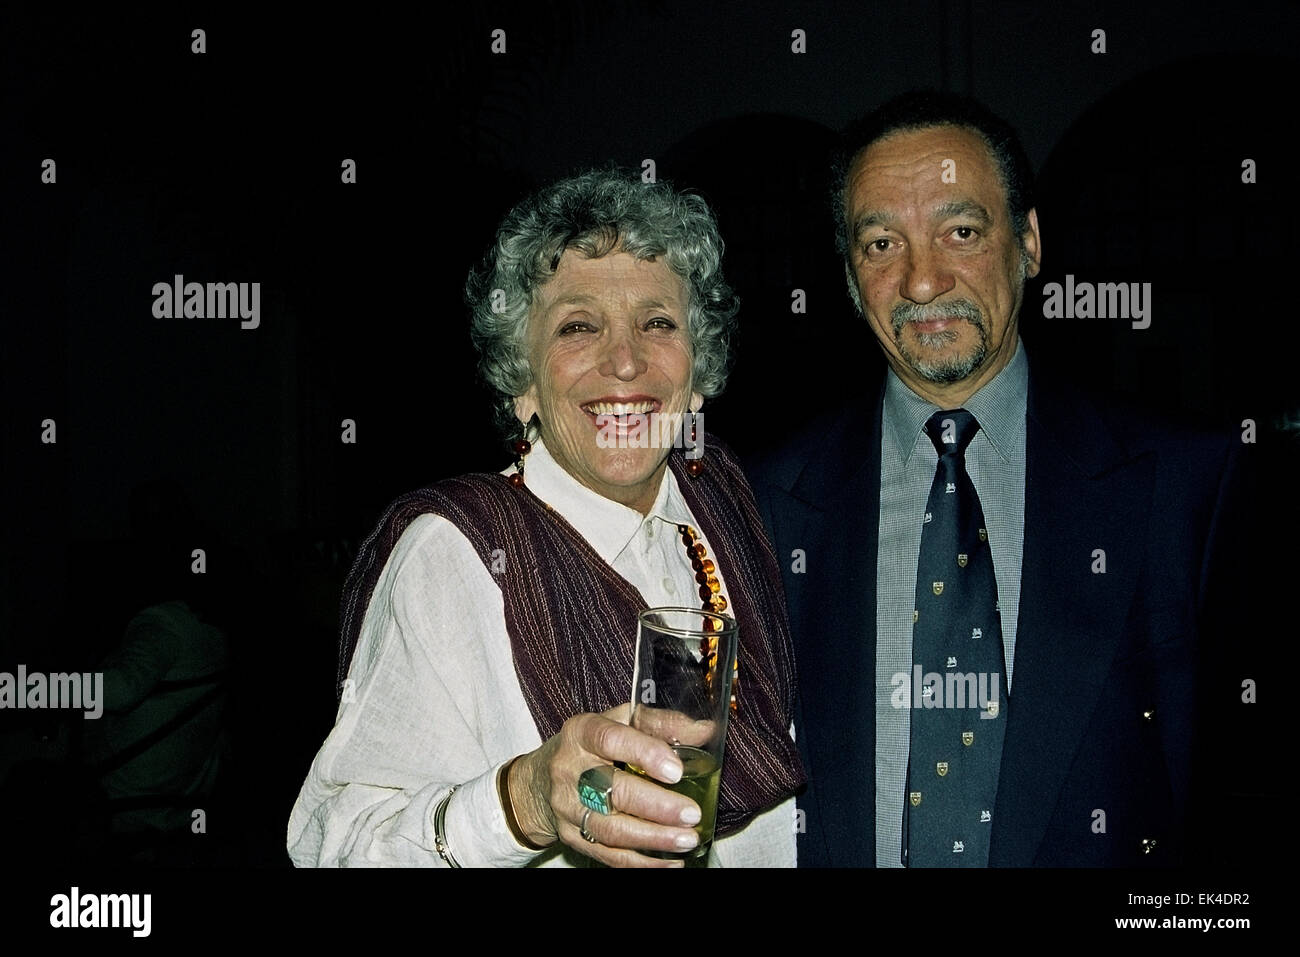 Dr AnneMarie Wolpe and Prof Jakes Gerwel at Harold Wolpe Memorial Trust Launch on 31 March 1997, at the Spier Festival - Stock Image